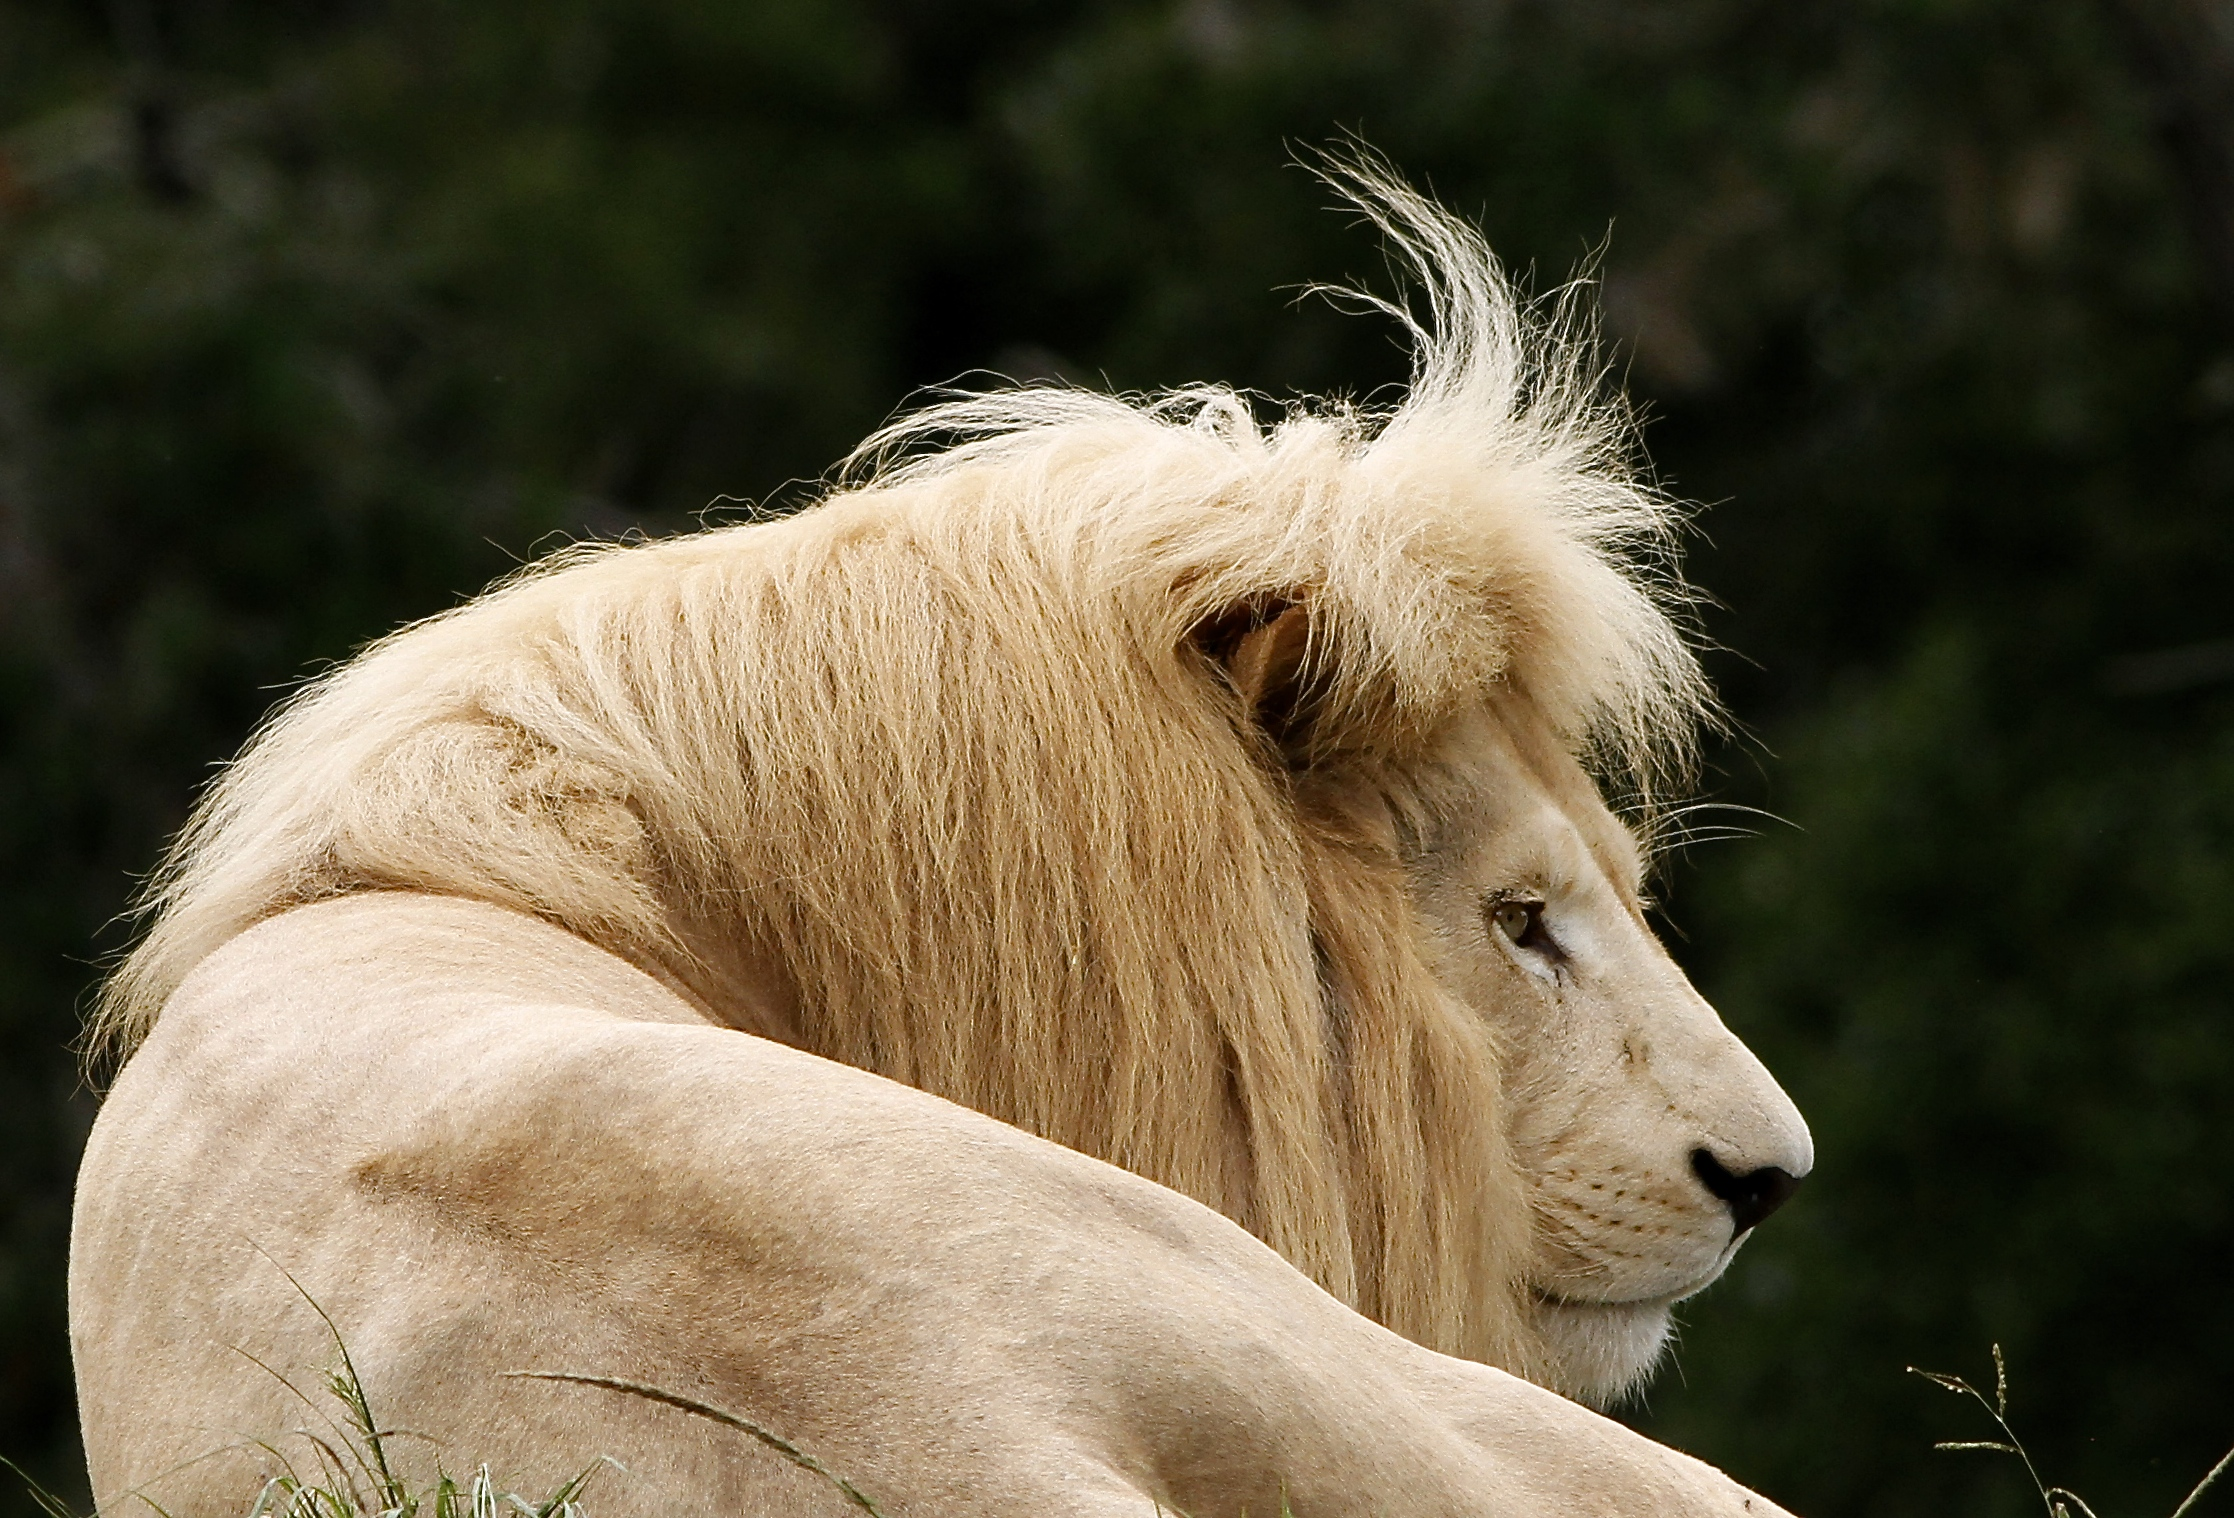 https://www.sirplett.co.za/userfiles/images/Check-that-fringe-of-the-White-lion-at-Jukani.JPG